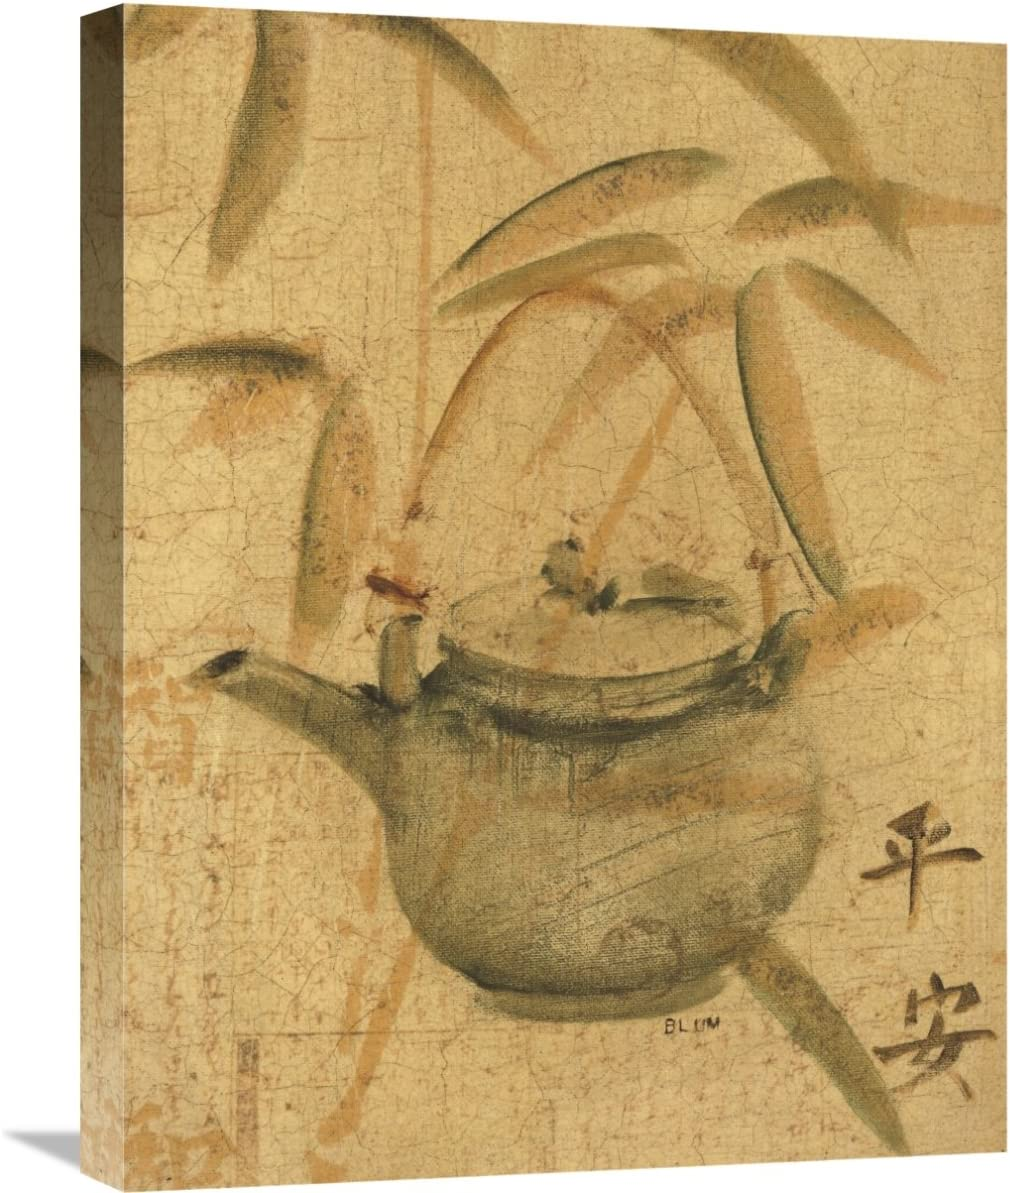 Global Gallery Cheri Blum Asian Teapot I Giclee Stretched Canvas Artwork 18 X 24 Posters Prints